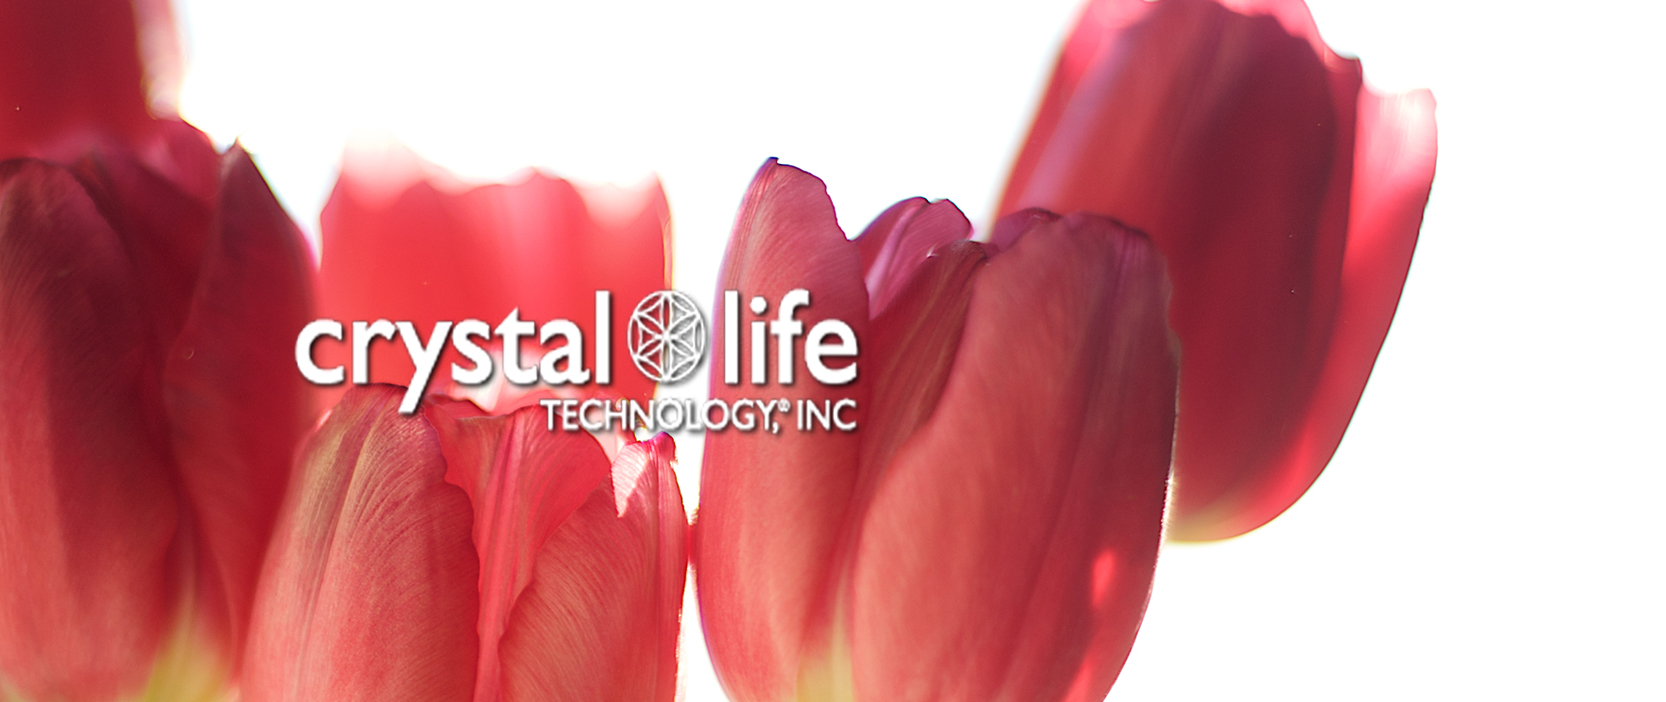 Crystal Life Technology